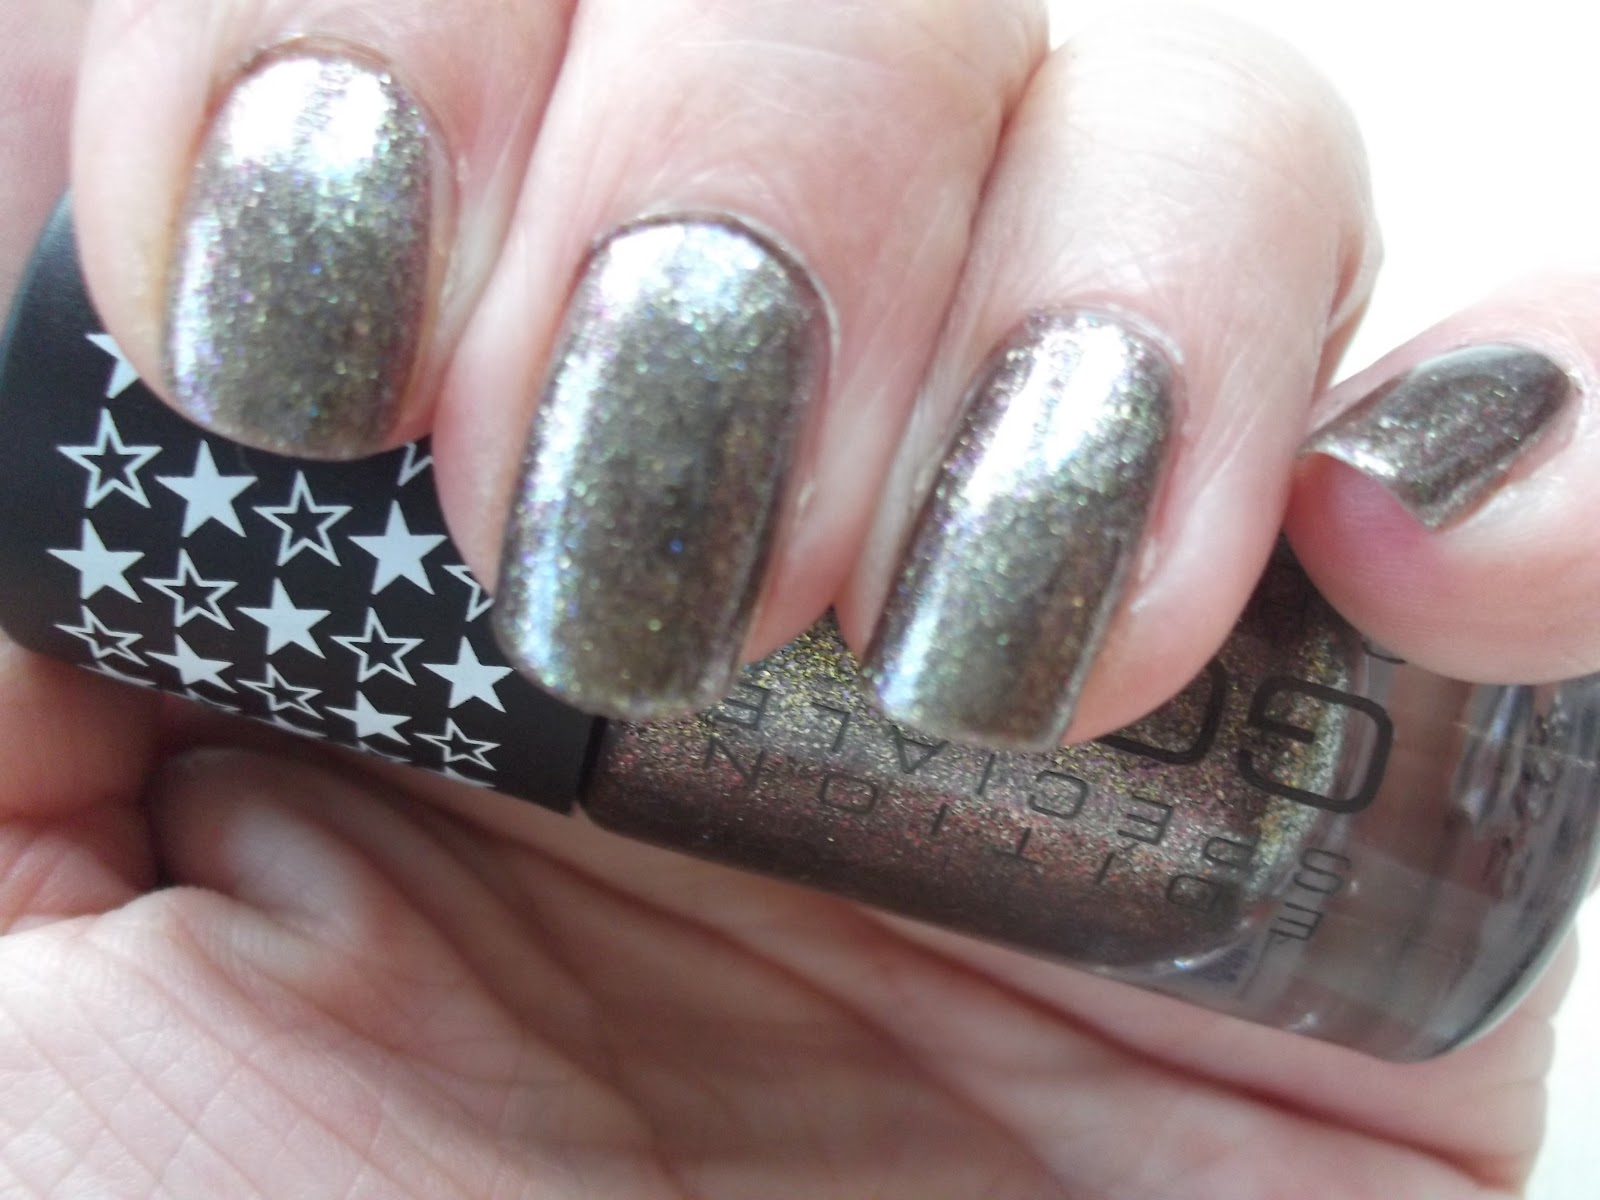 GOSH Nail Lacquer in Galaxy | British Beauty Blogger